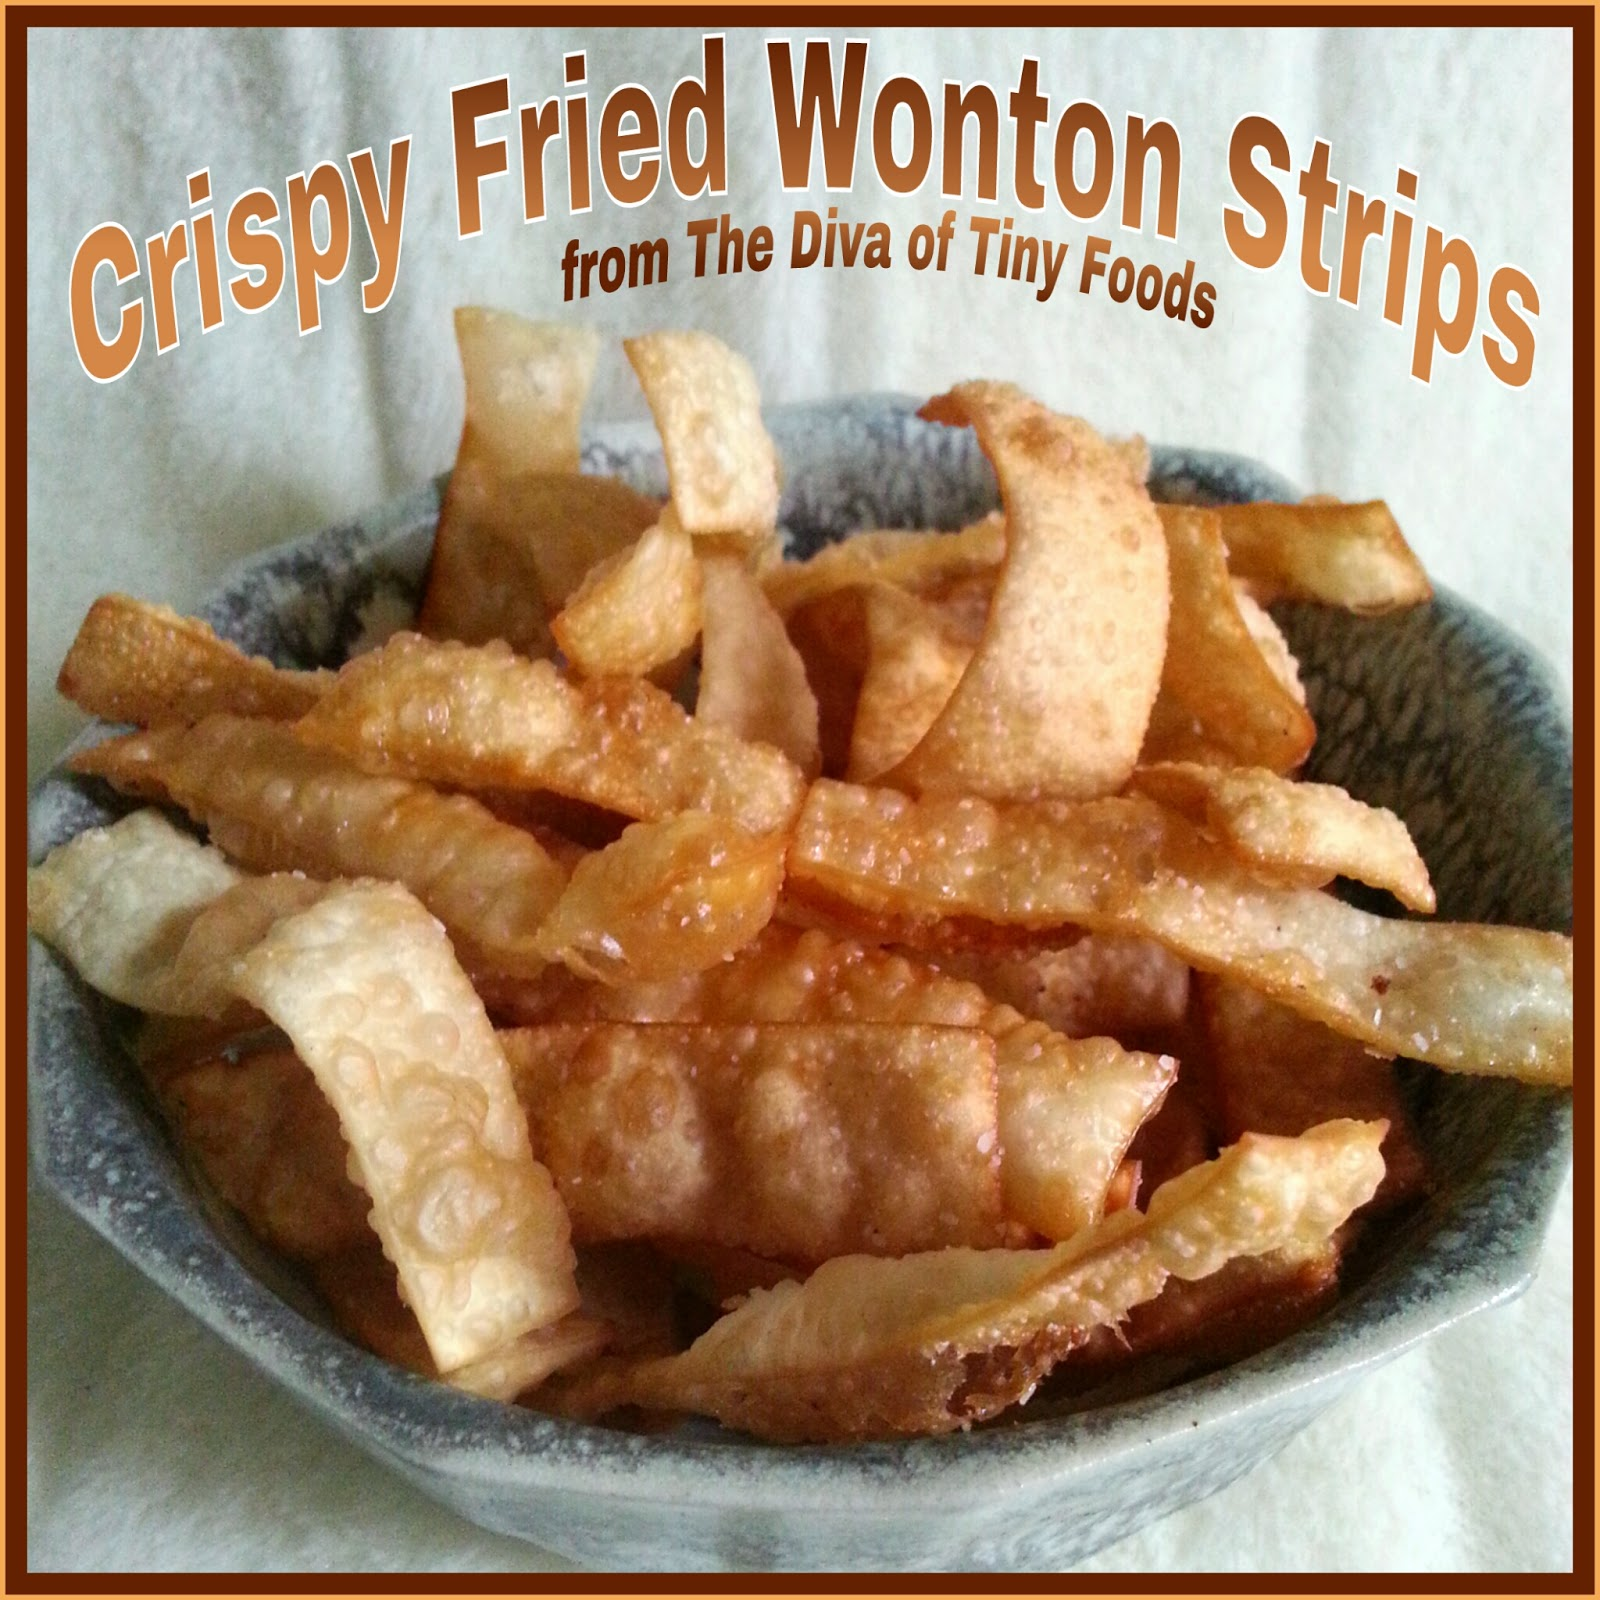 CRISPY FRIED WONTON STRIPS